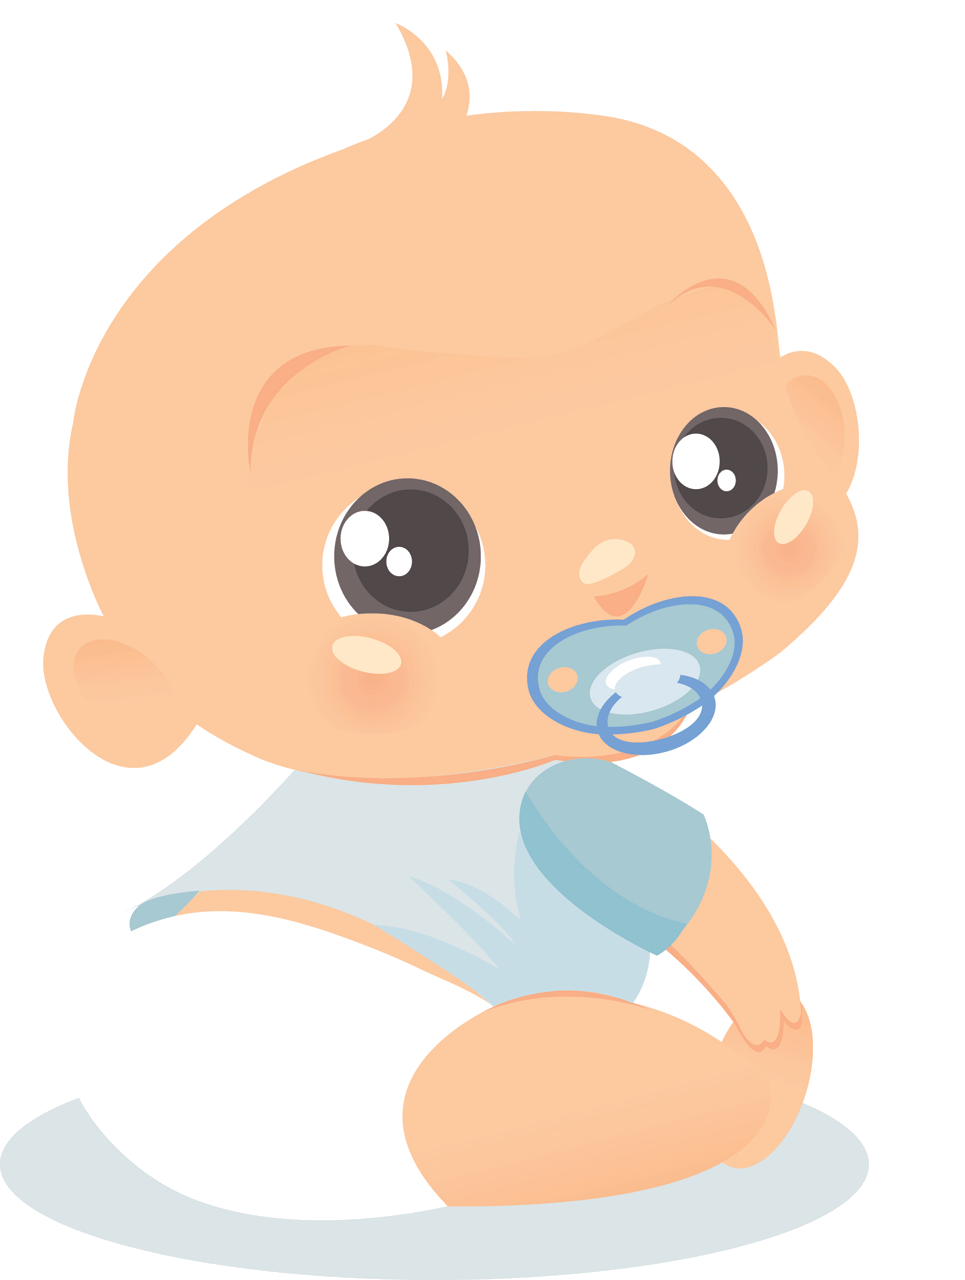 Transparent pacifier newborn baby boy. Https img fotki yandex